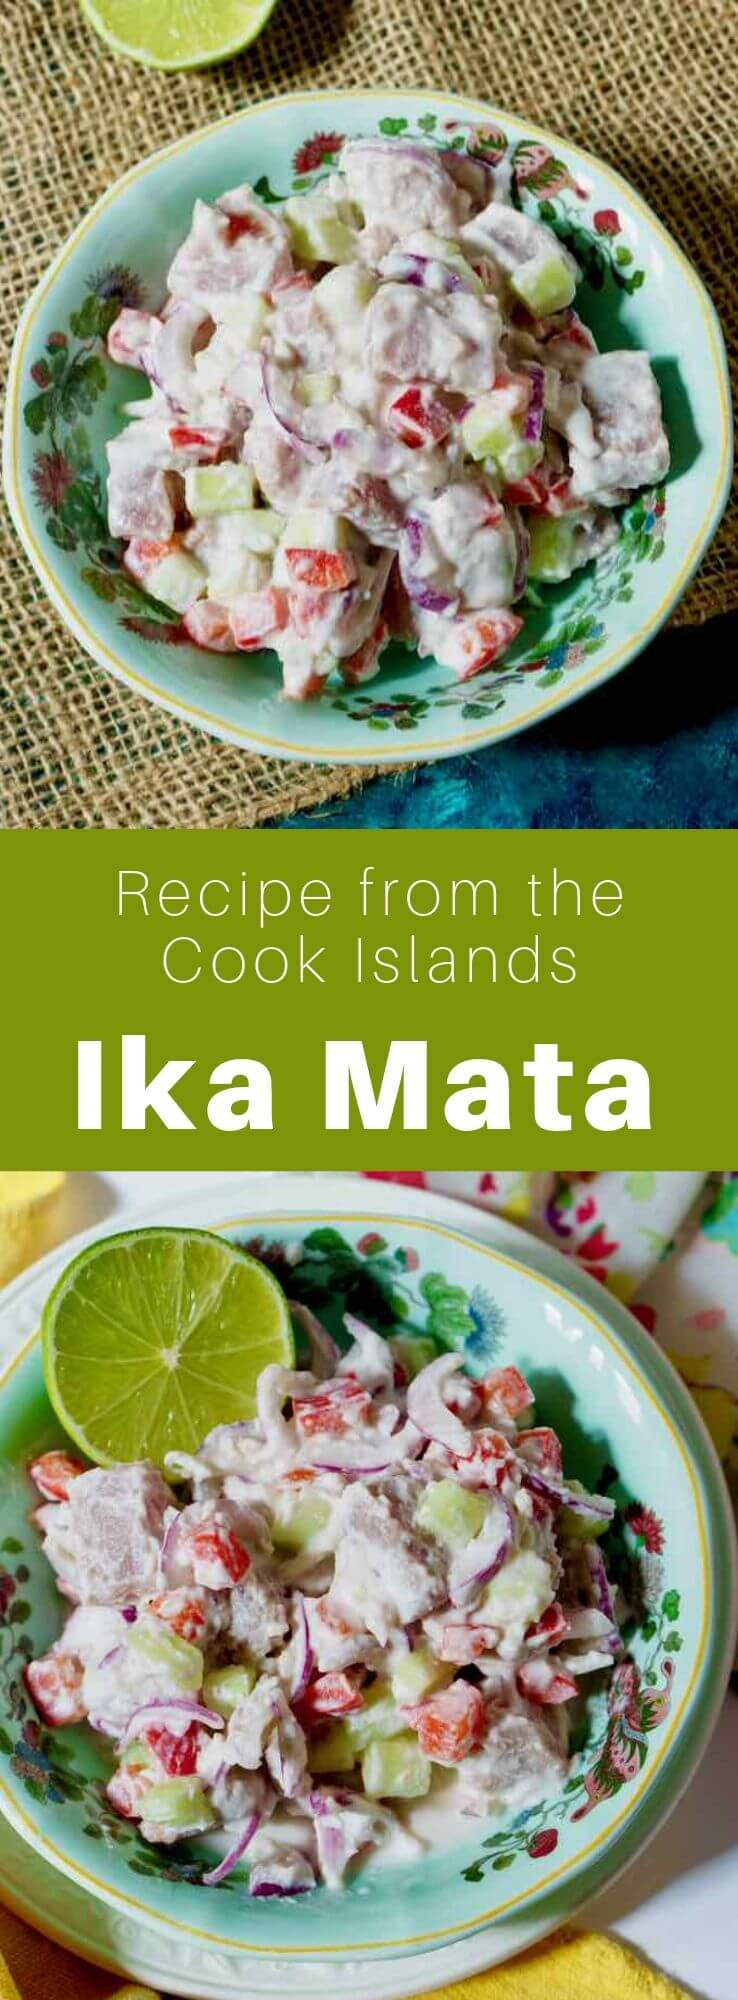 Ika mata is a famous traditional dish from the Cook Islands, prepared with raw fish that is marinated in lime and coconut milk. #CookIslands #PacificCuisine #PacificRecipe #PacificFood #WorldCuisine #196flavors